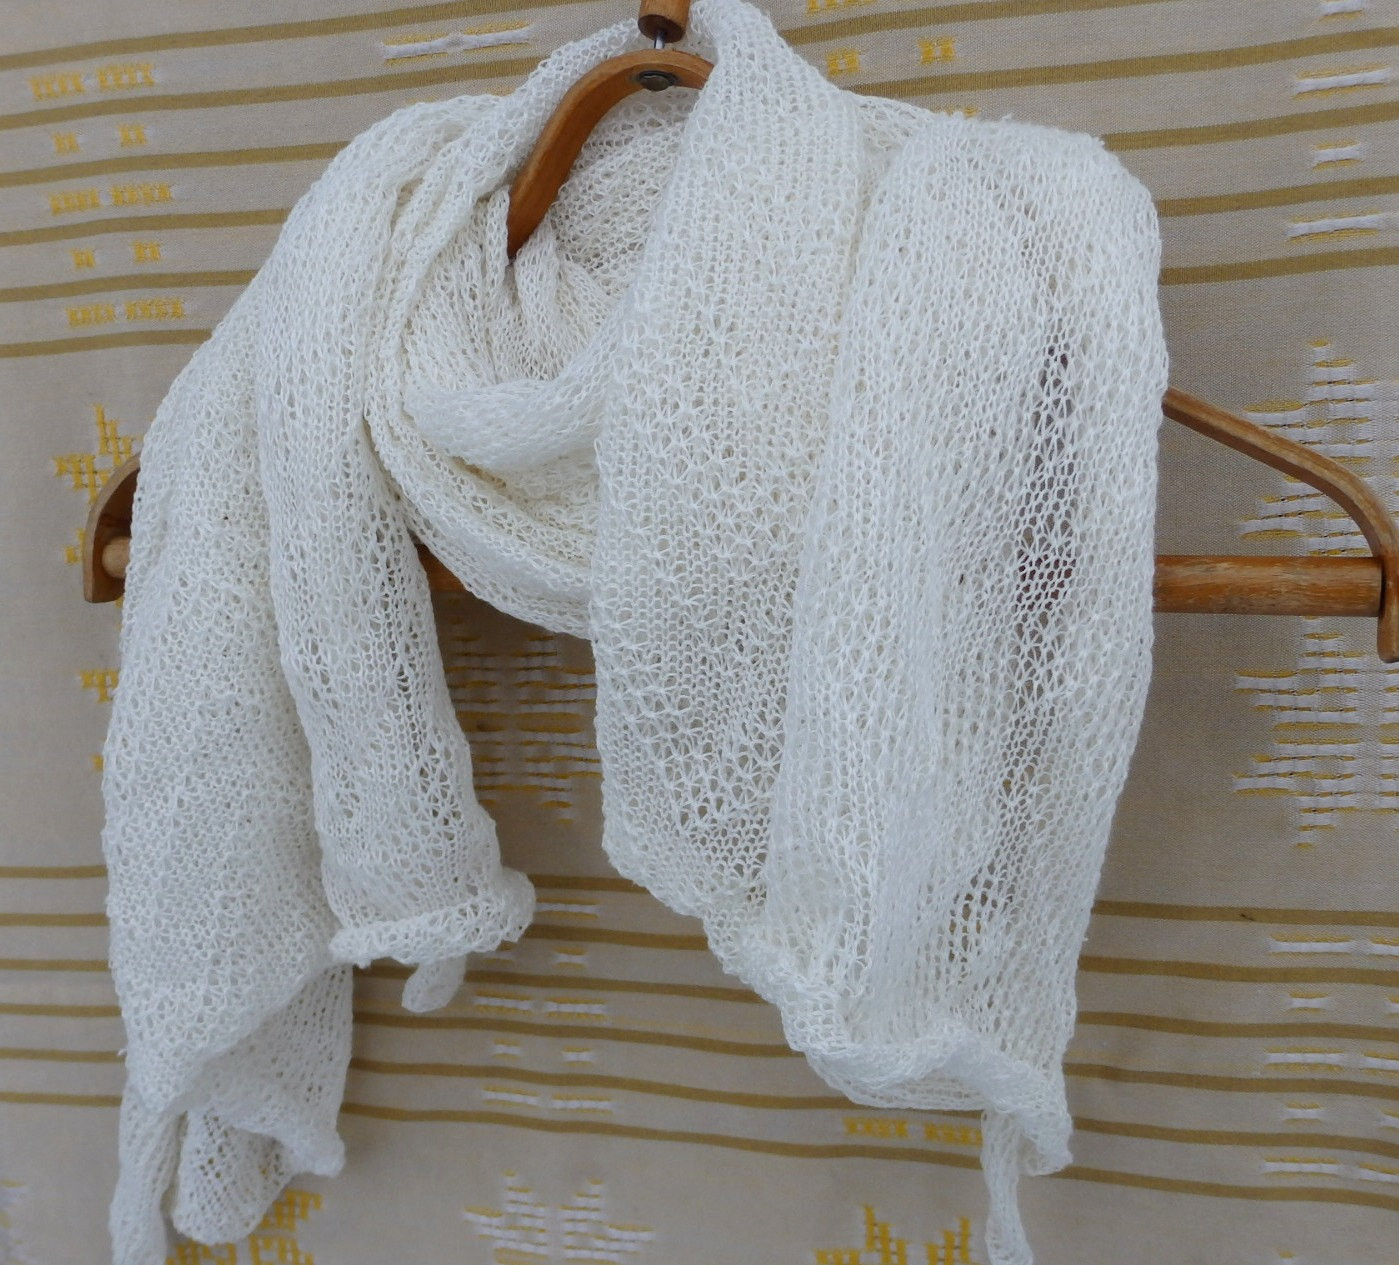 Luxury Knit Linen Scarf Knitted White Lace Shawl Knitting Wedding Knitted Wedding Shawl Of Innovative 43 Pictures Knitted Wedding Shawl